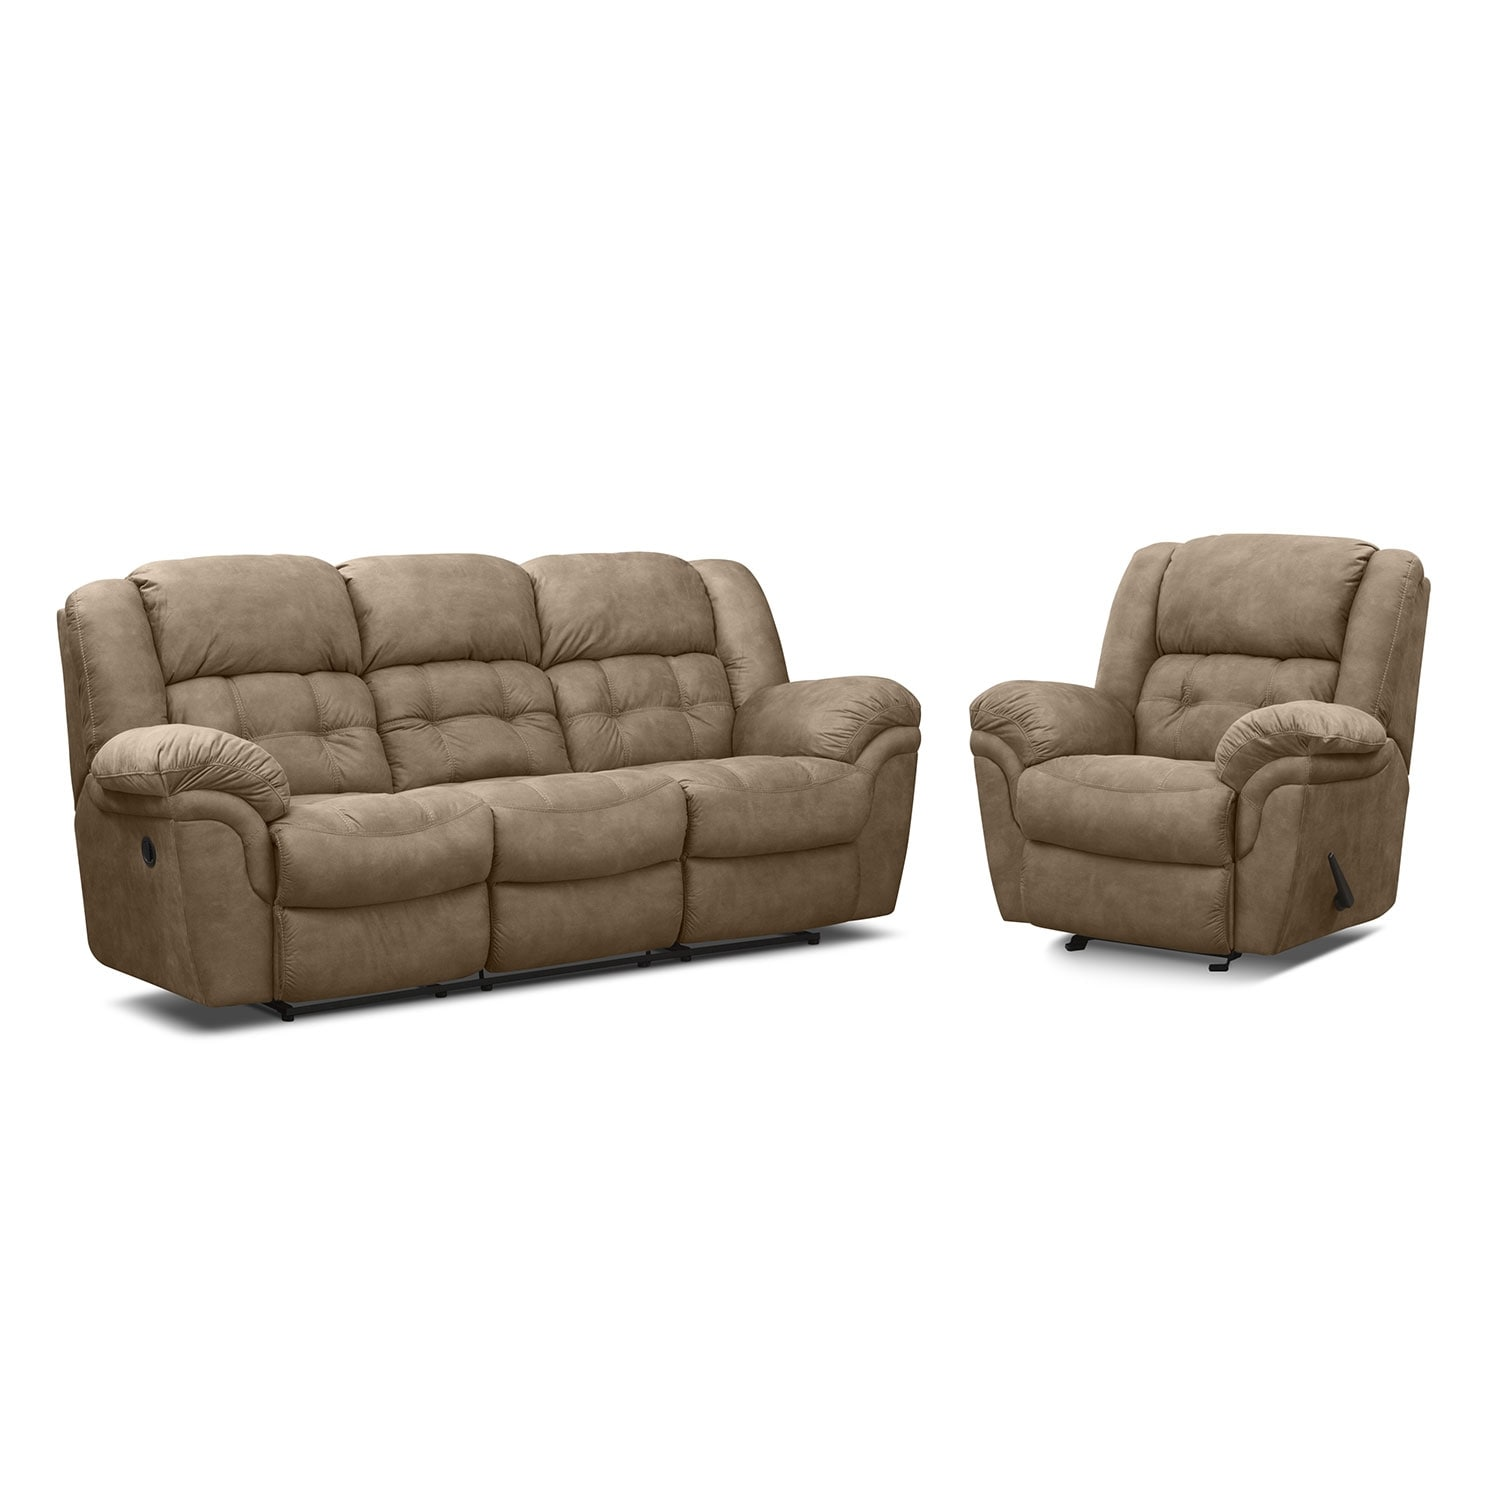 Living Room Furniture - Lancer Pecan II 2 Pc. Power Reclining Living Room w/ Glider Reclin